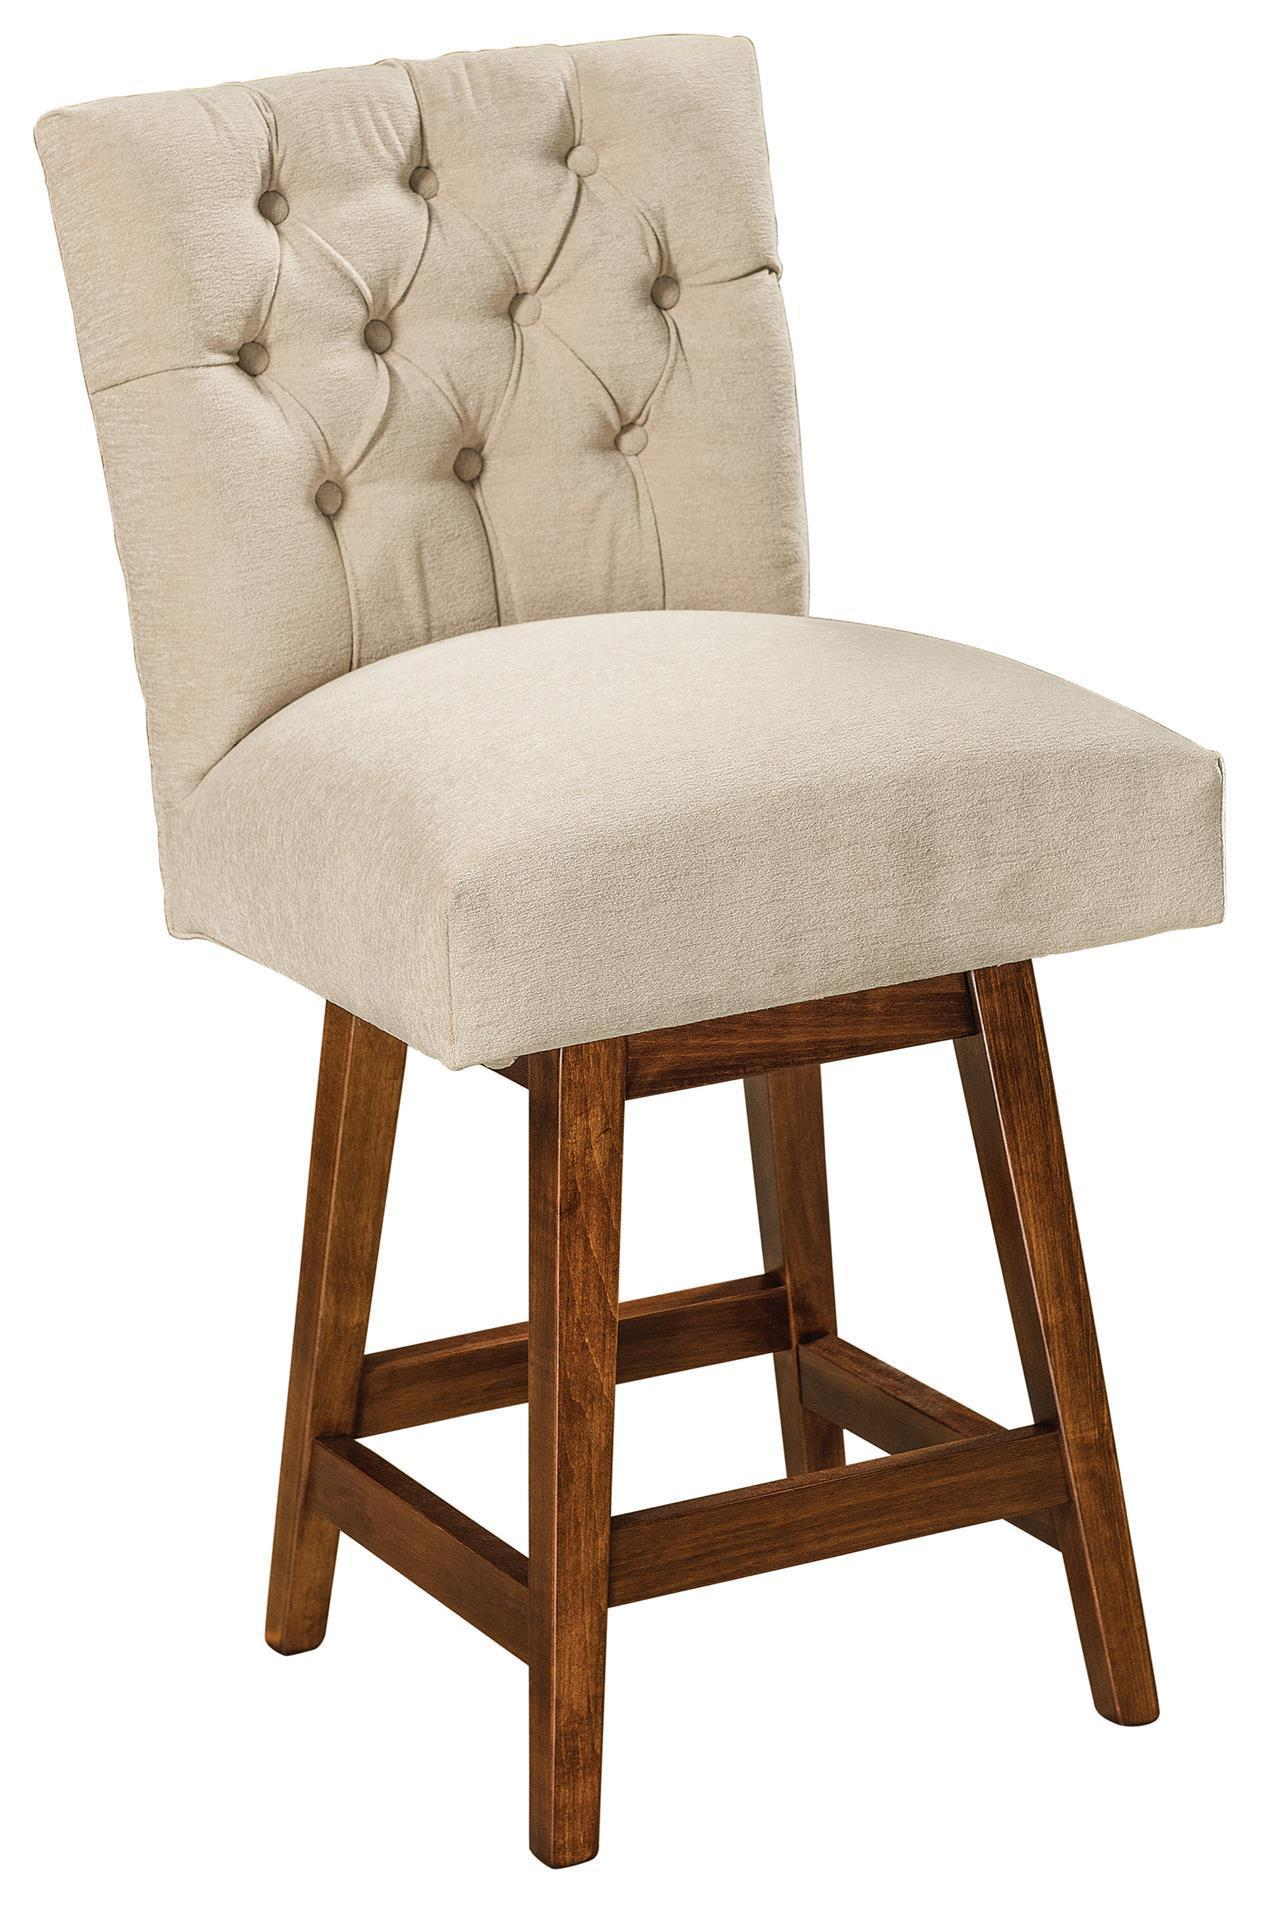 Alana Swivel Parsons Bar Stool From Dutchcrafters Amish